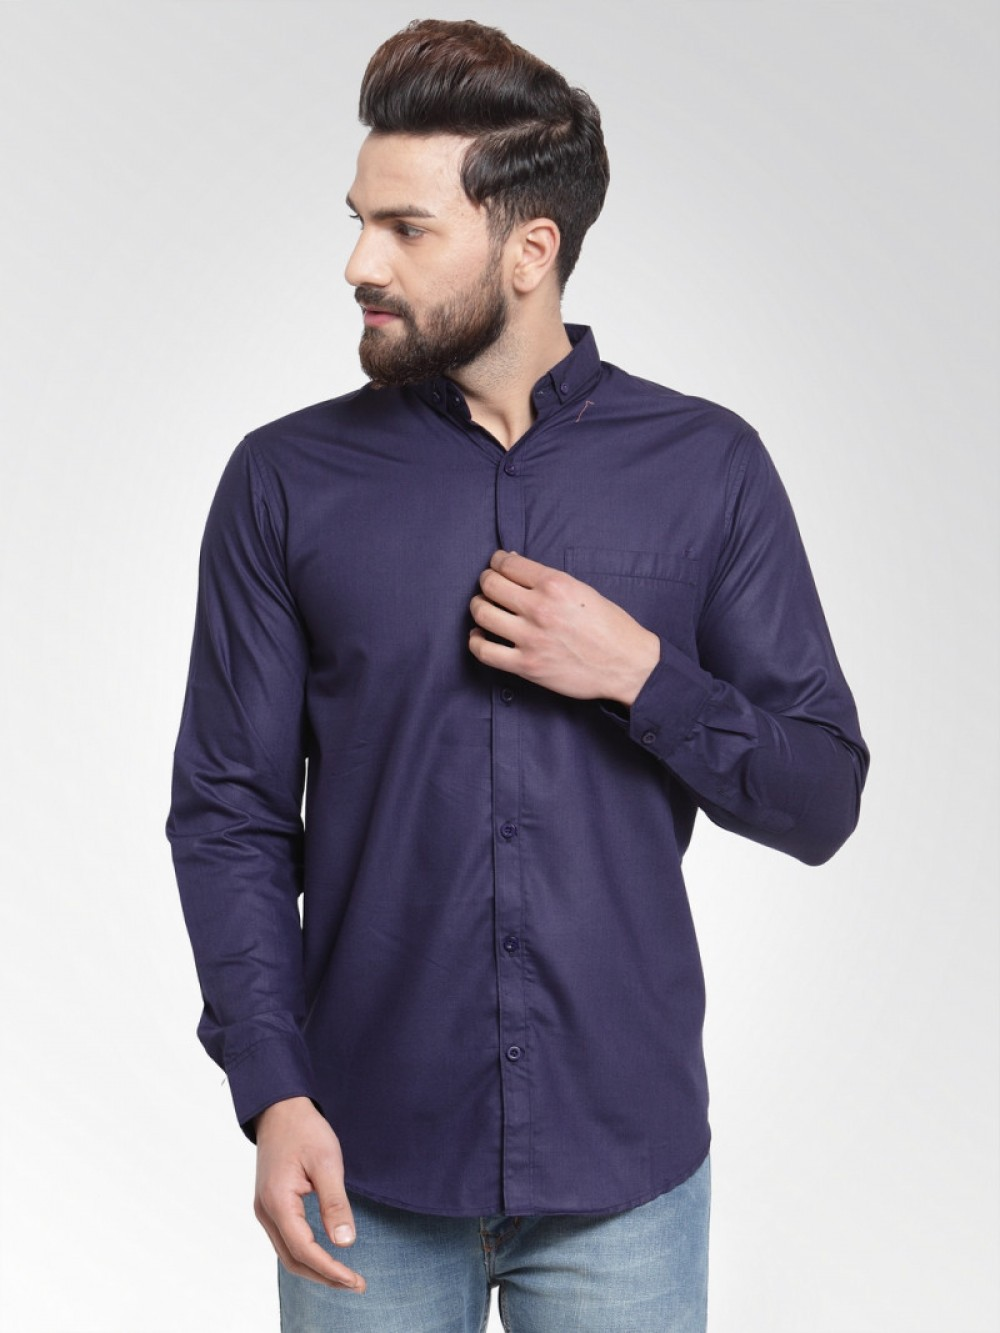 Navy Blue Color Plain Office Wear Shirt